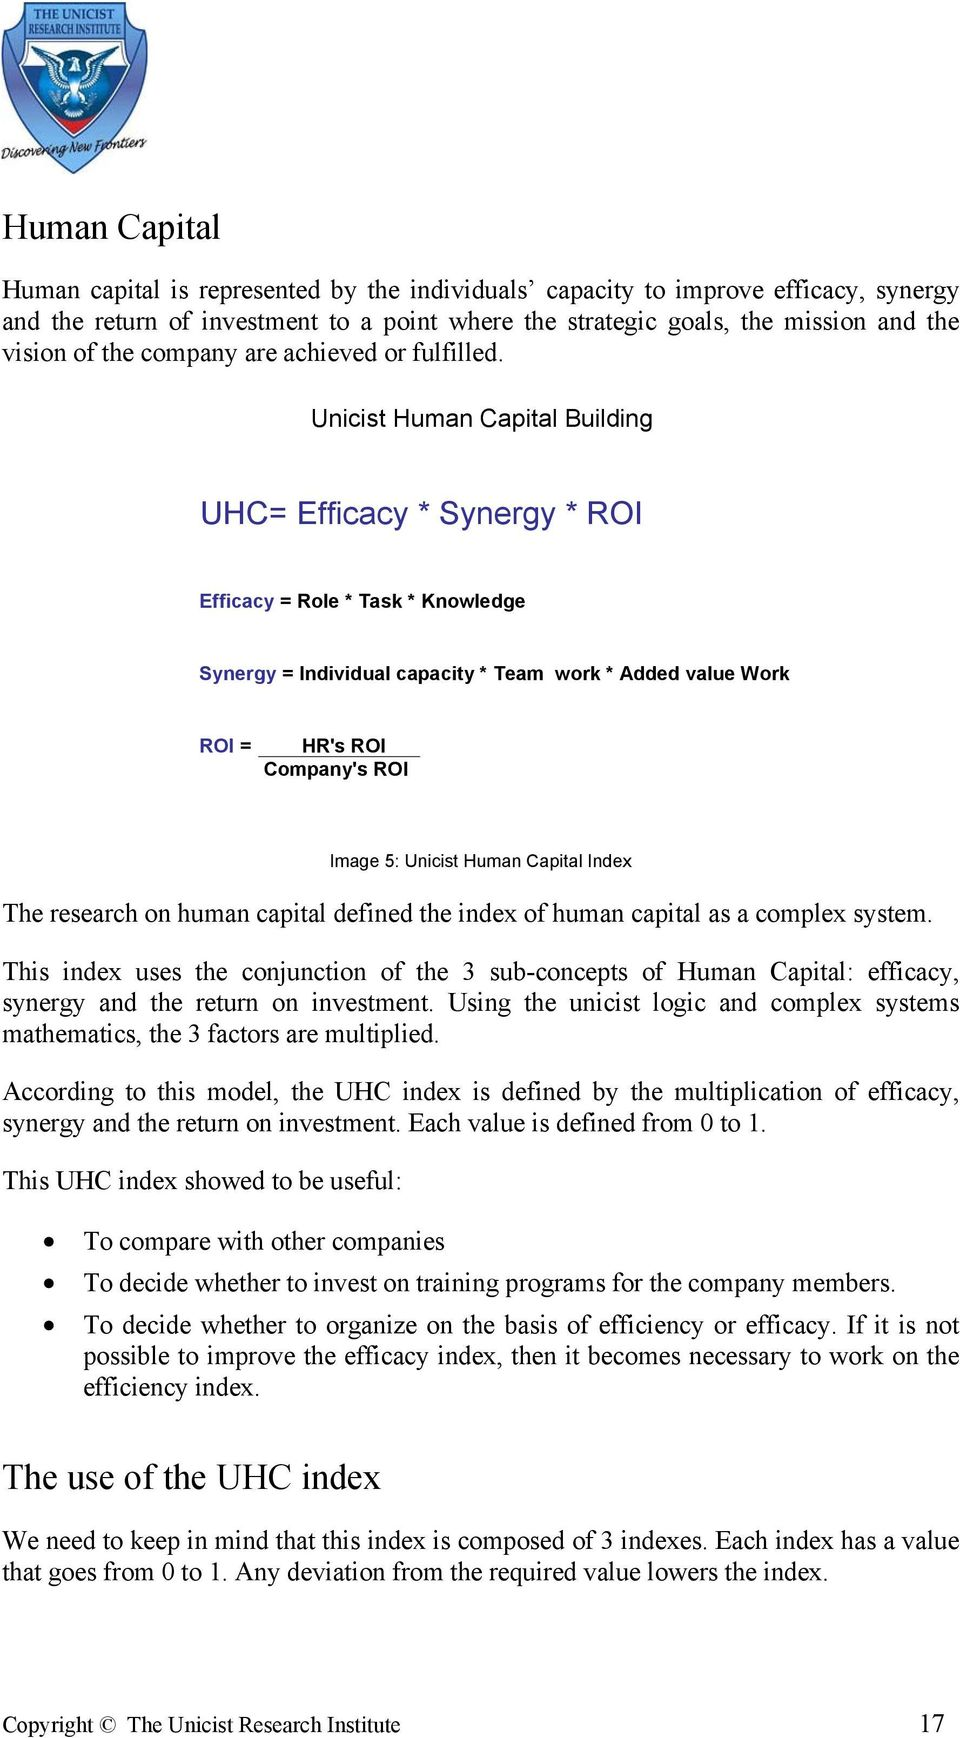 Unicist Human Capital Building UHC= Efficacy * Synergy * ROI Efficacy = Role * Task * Knowledge Synergy = Individual capacity * Team work * Added value Work ROI = HR's ROI Company's ROI Image 5: